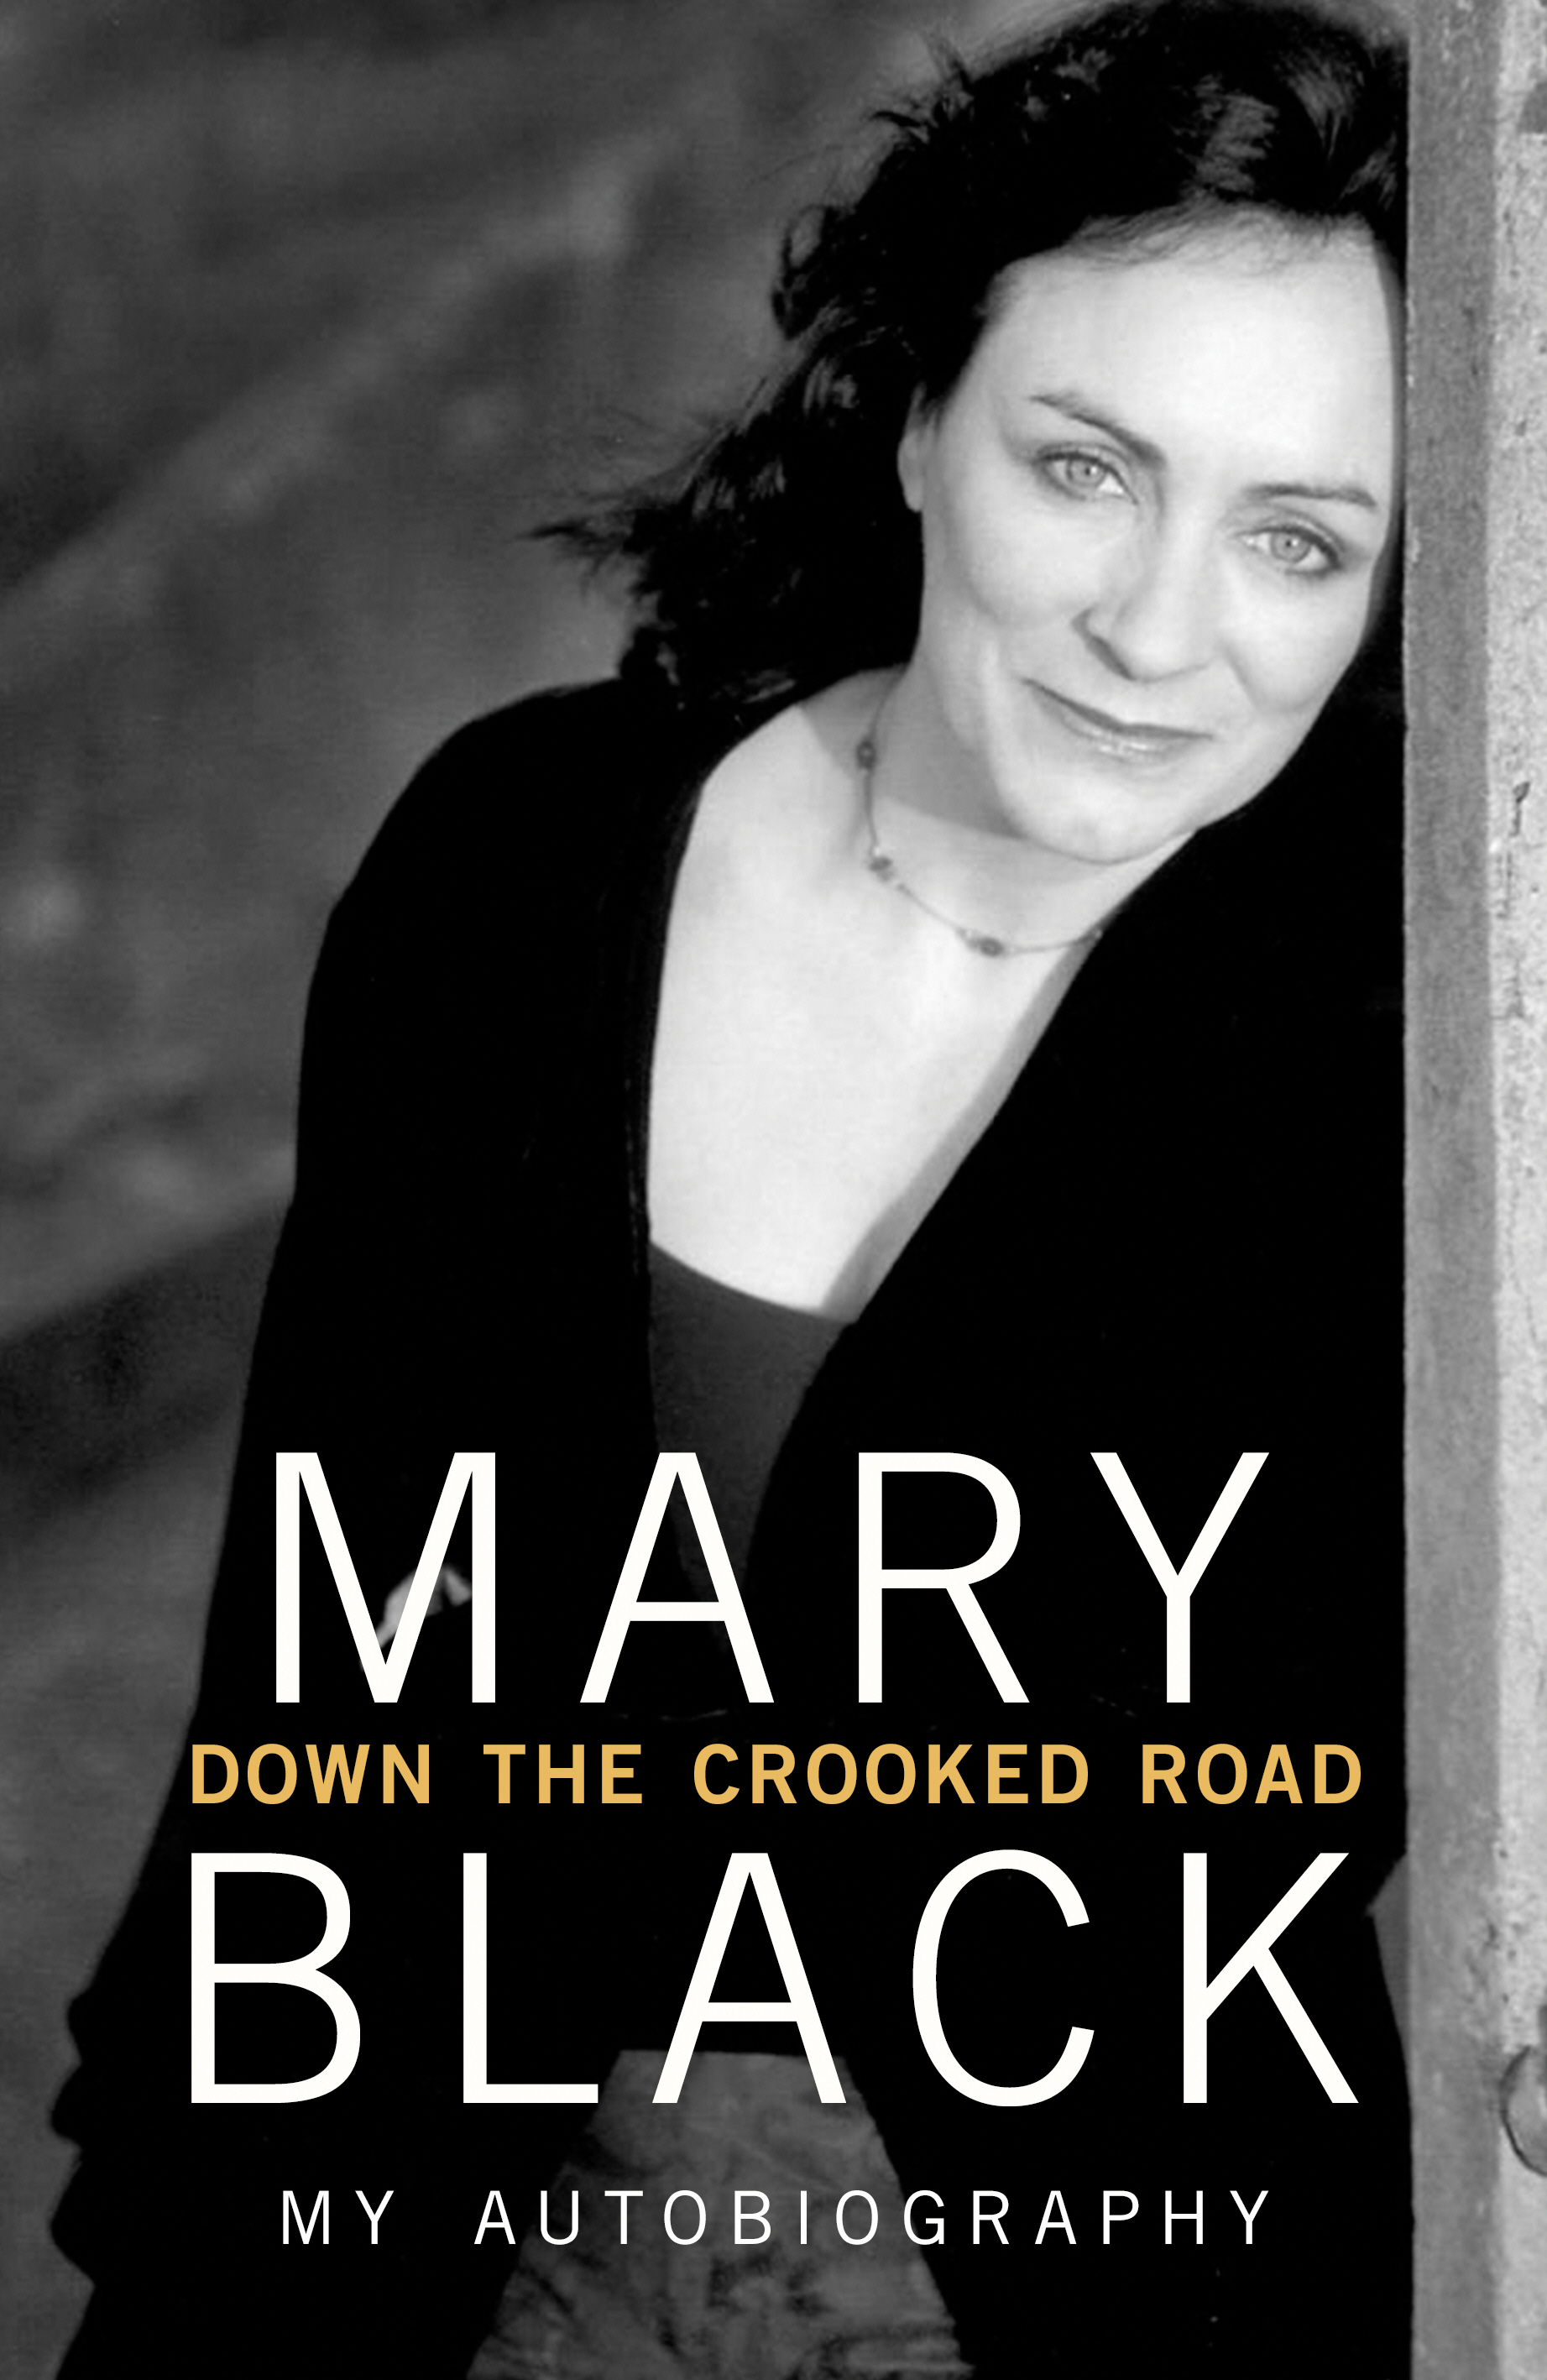 Down the Crooked Road My Autobiography